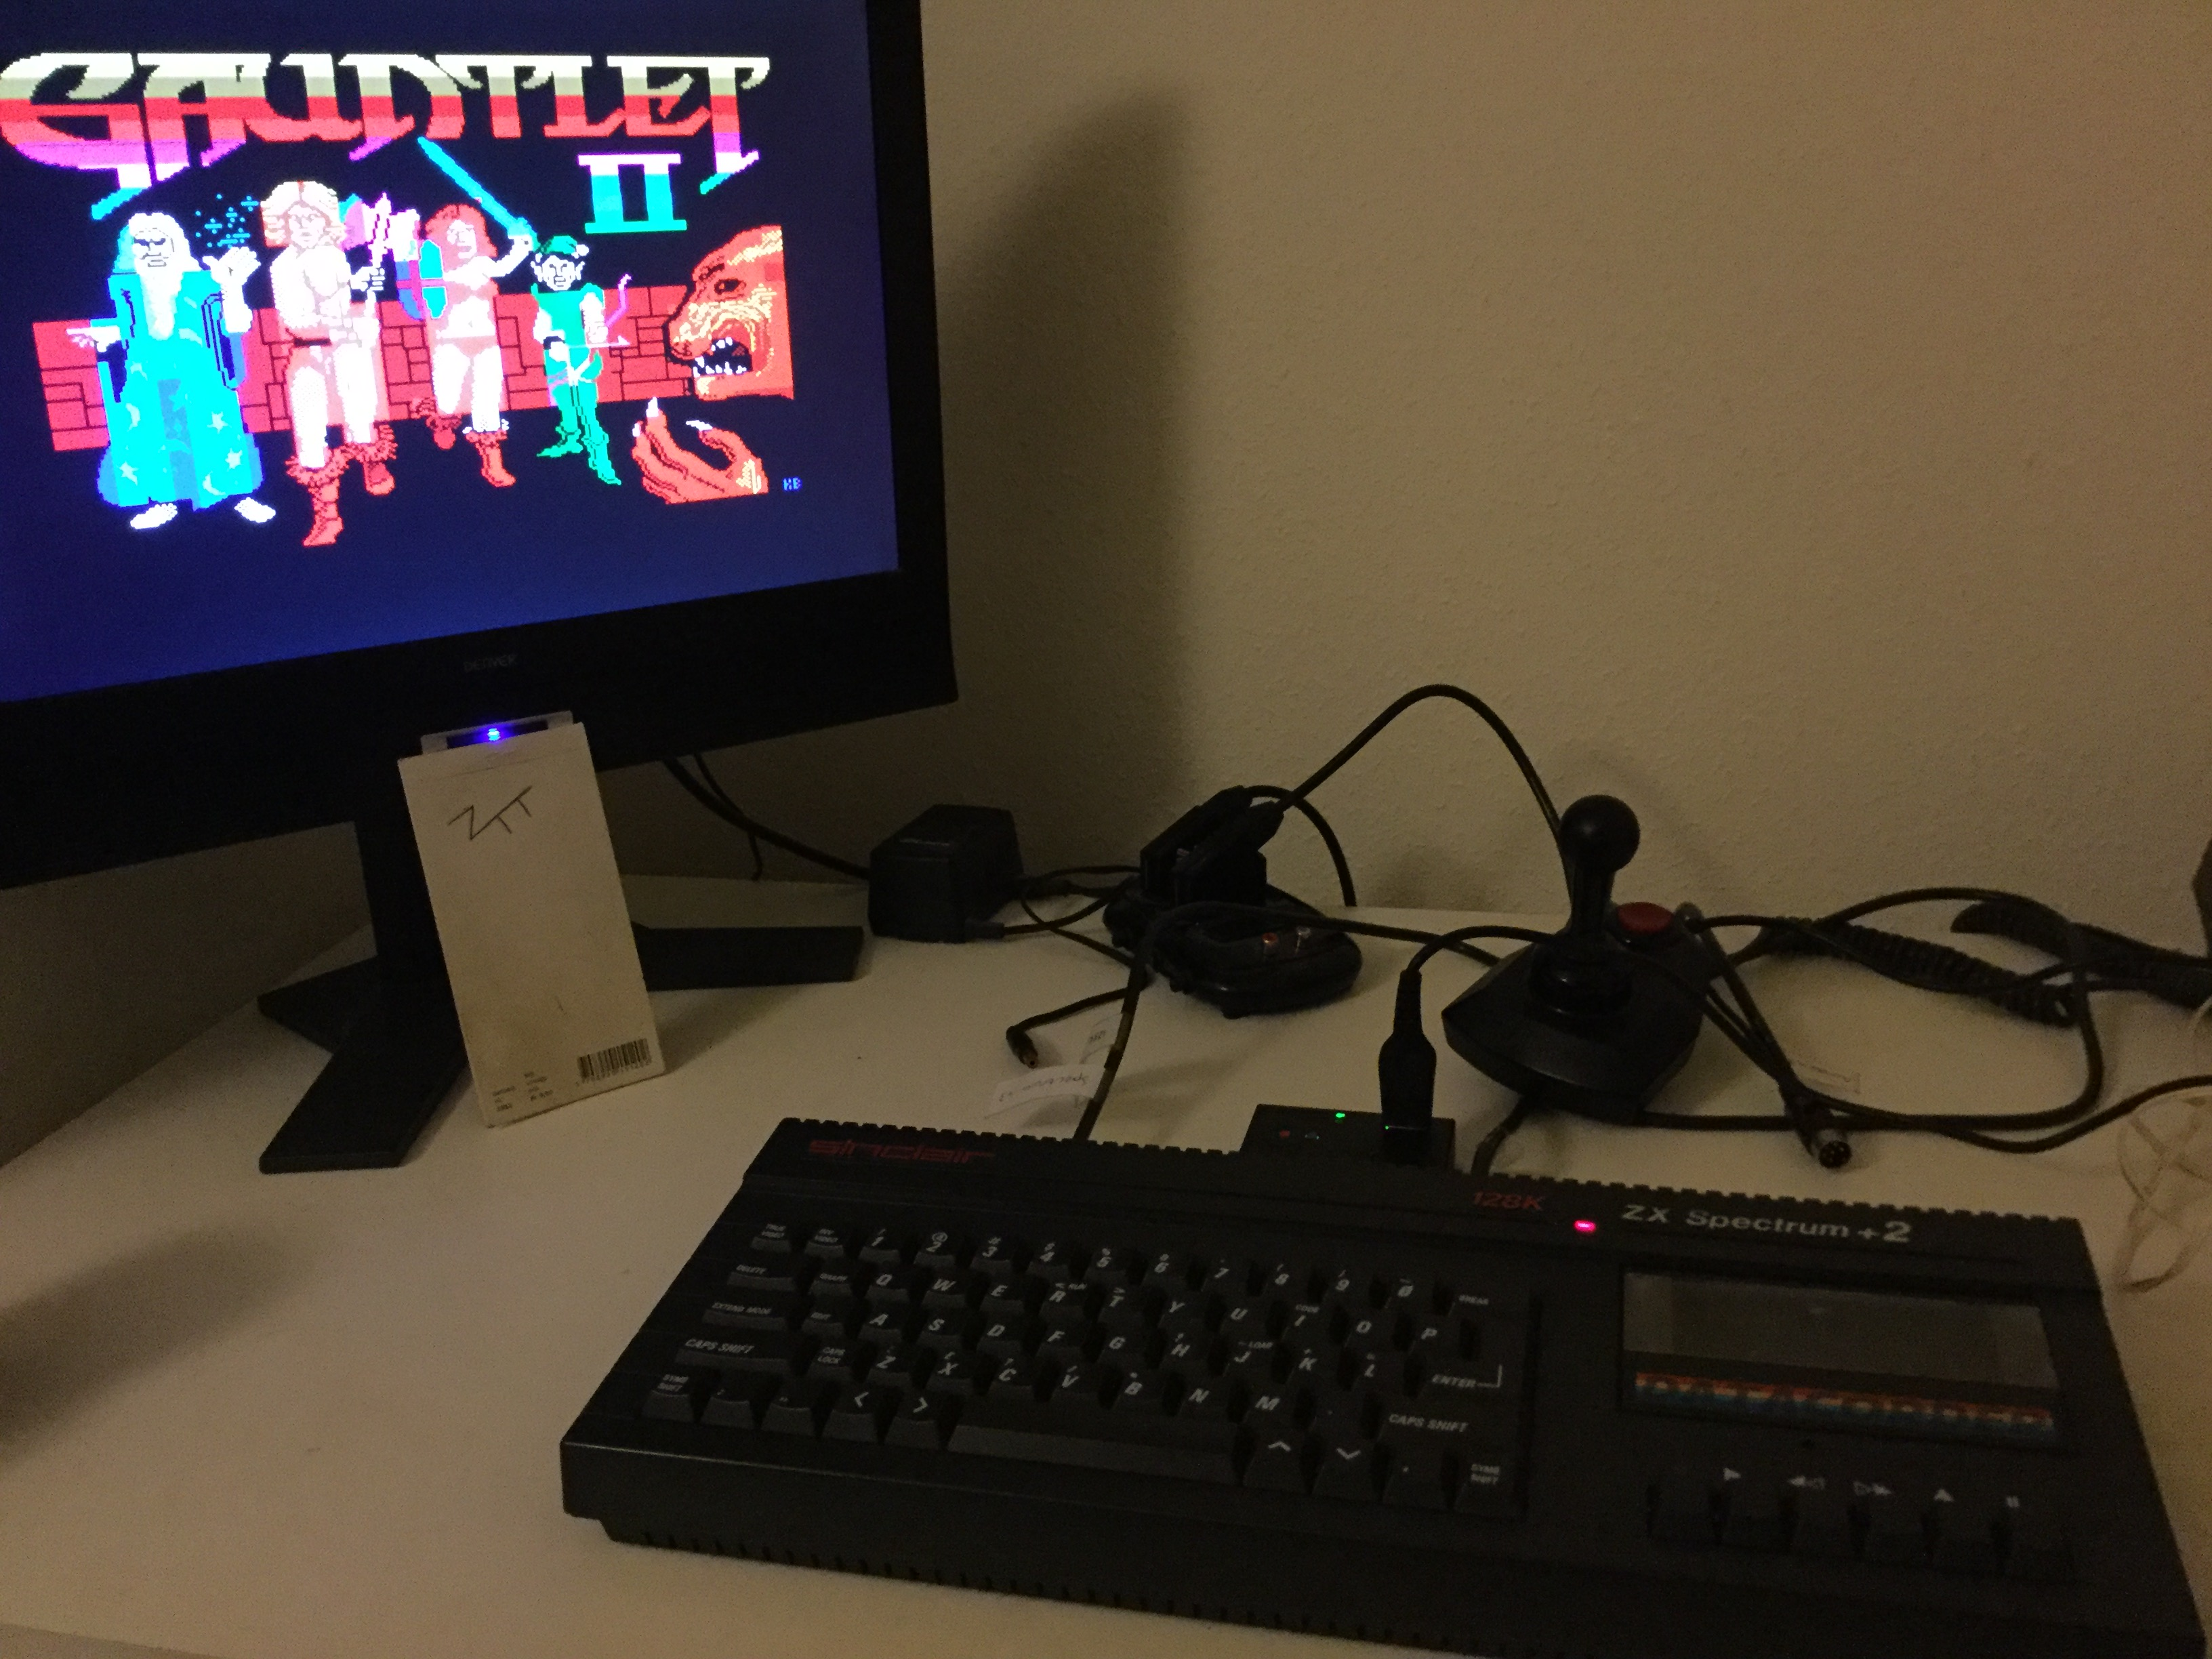 Frankie: Gauntlet II (ZX Spectrum) 22,576 points on 2020-01-26 04:26:06